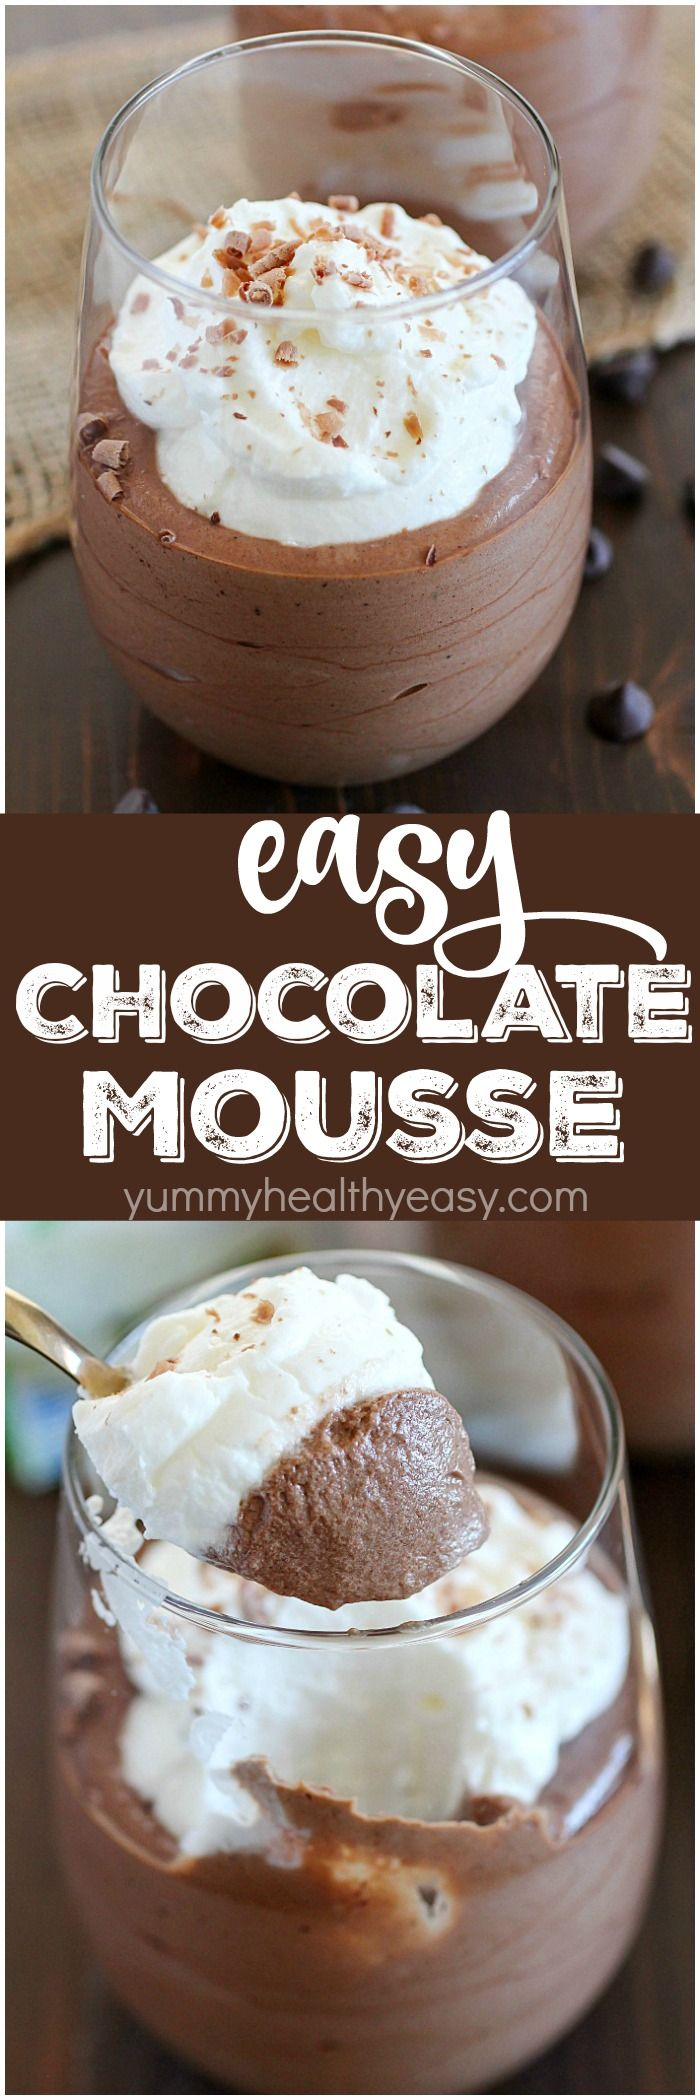 Chocolate Mousse that's easy to make with only 5 simple ingredients. You won't believe how creamy